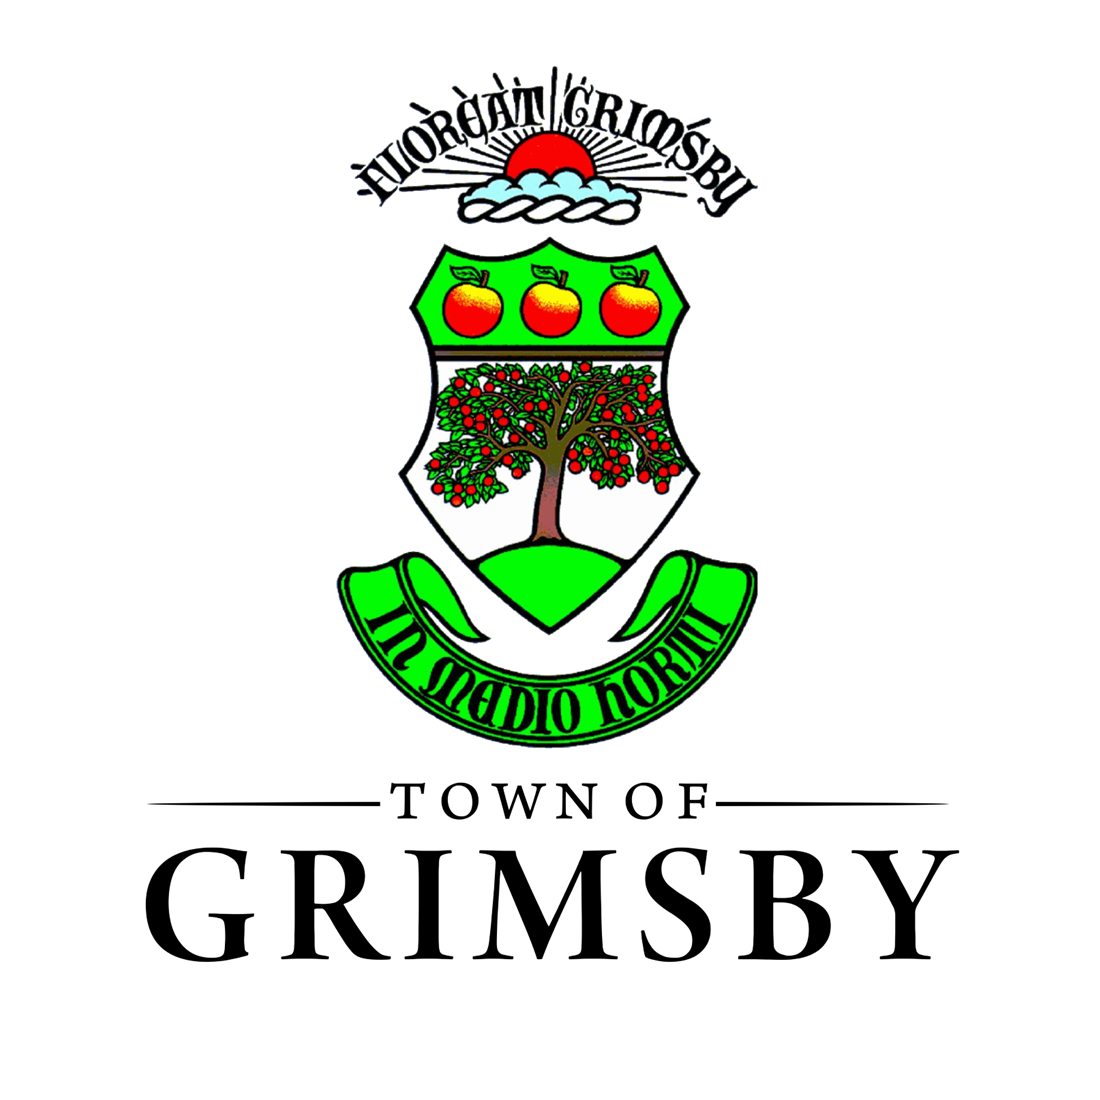 Grimsby-logo-1100x1100-1.png